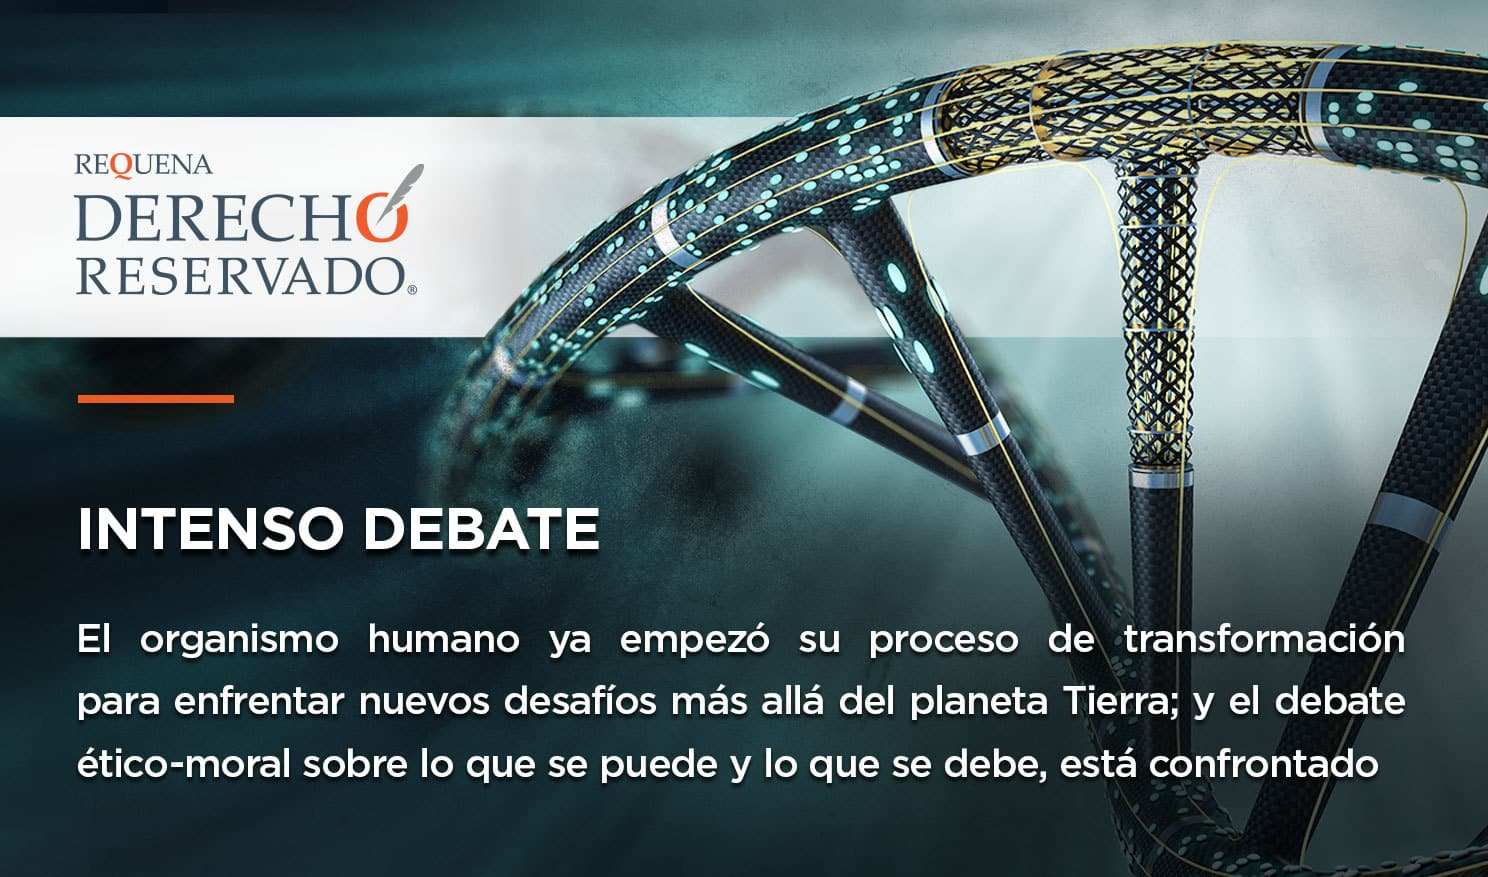 Intenso debate